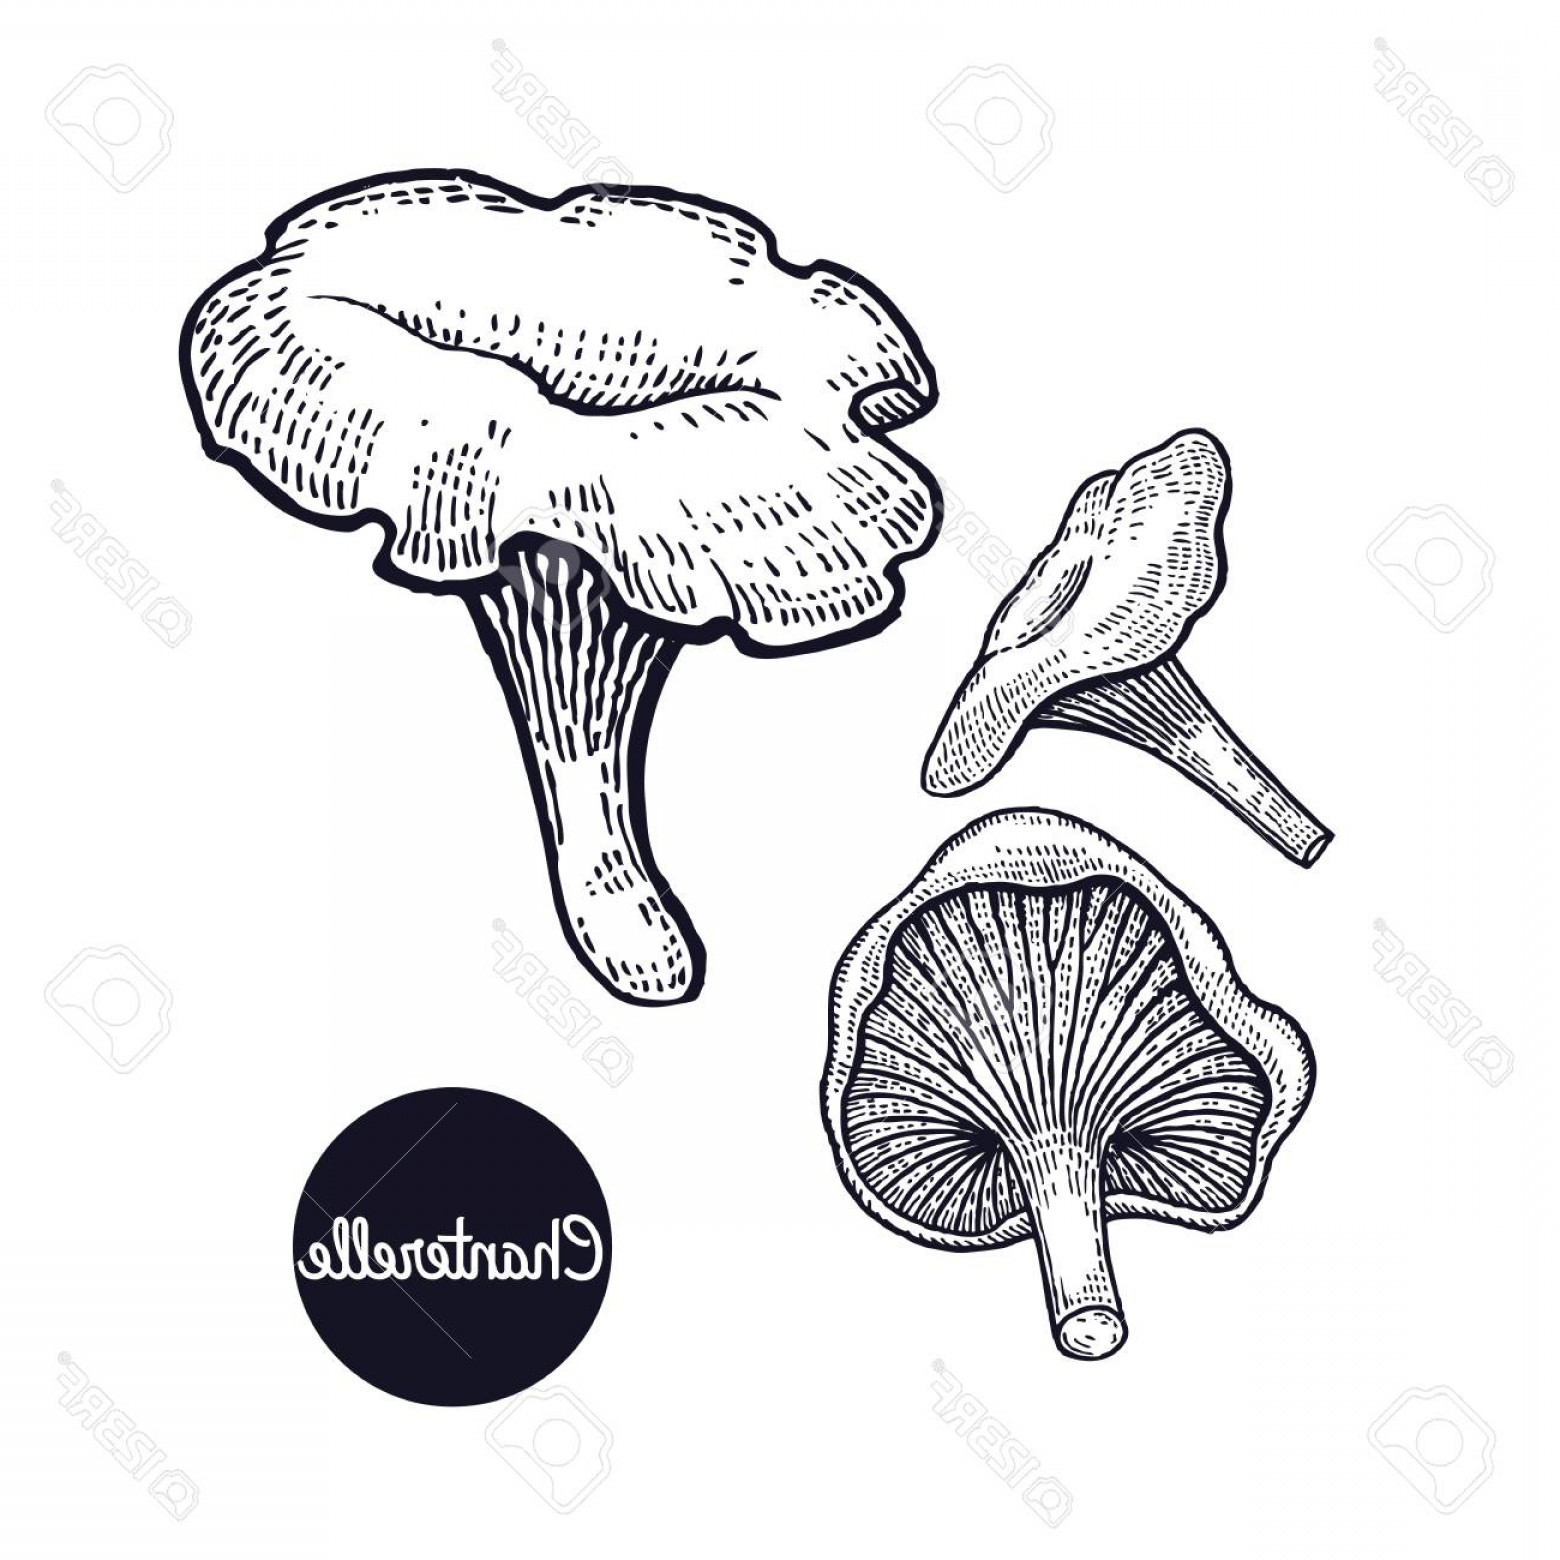 Chanterelle Mushrooms Vector: Photostock Vector Hand Drawing A Gourmet Mushroom Chanterelle Style Vintage Engraving Graphics In Black Ink Isolated O